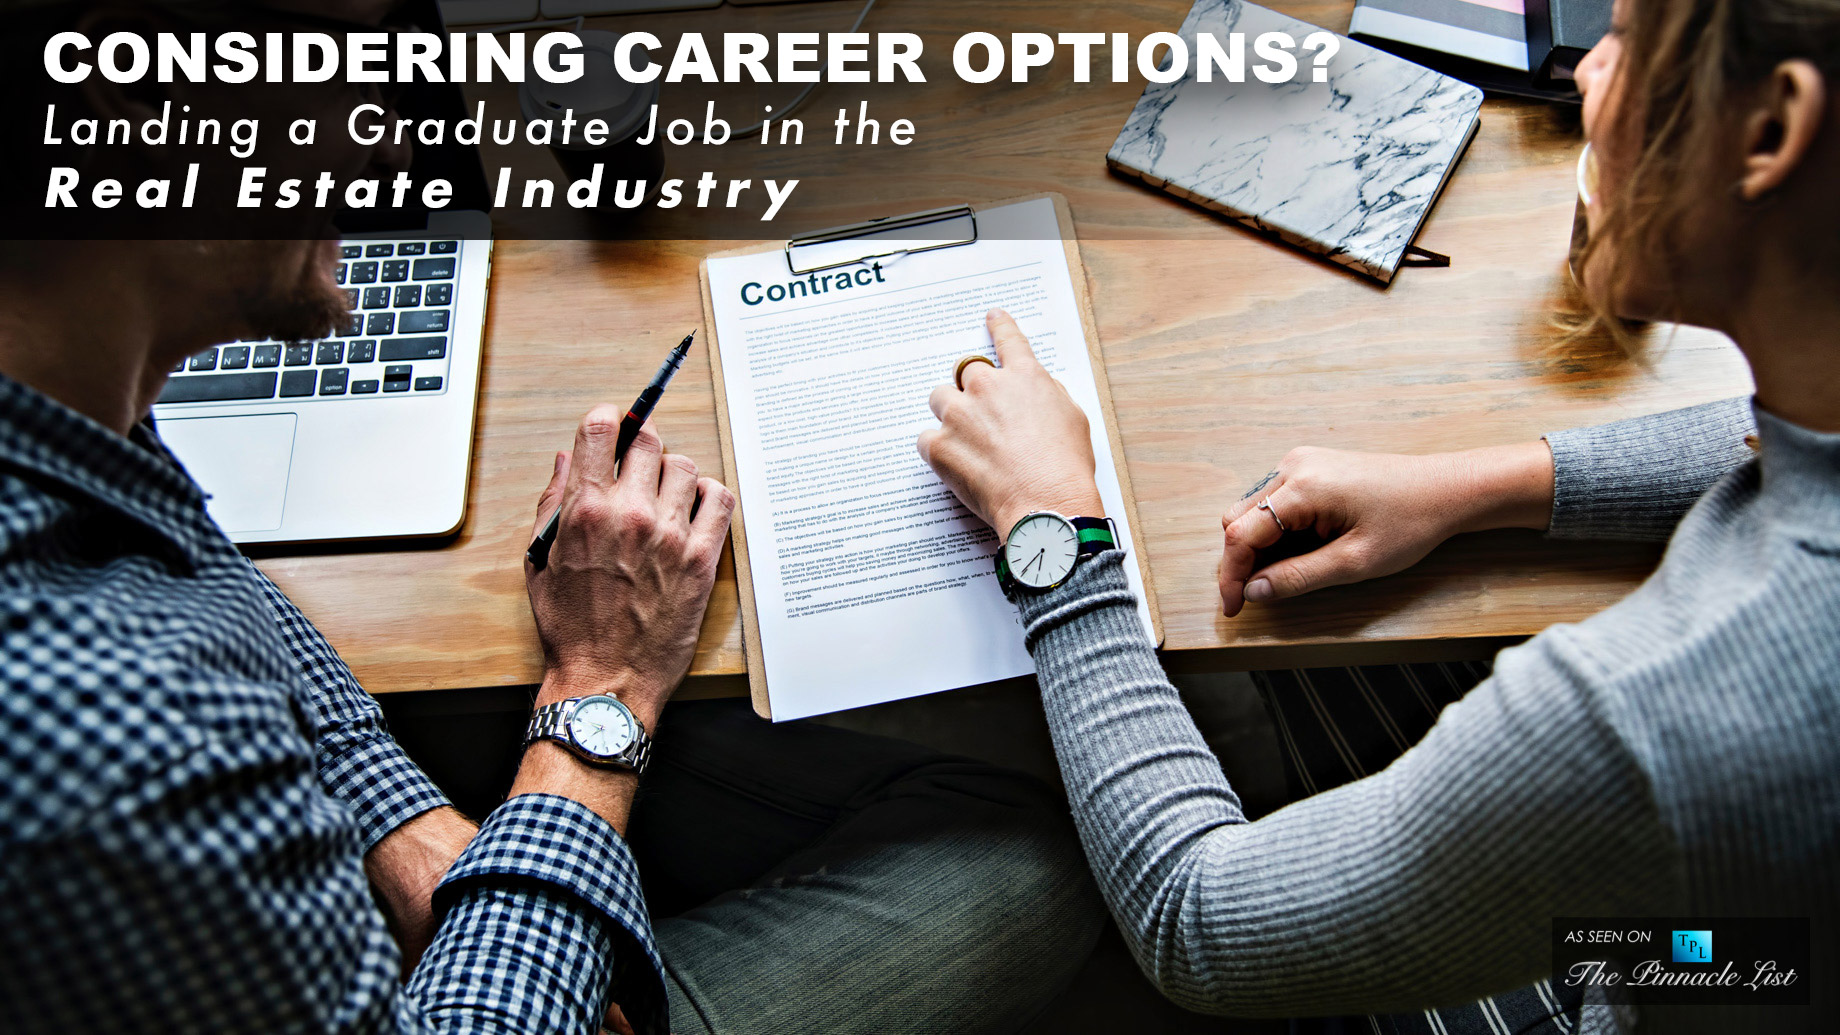 Considering Career Options? - Landing a Graduate Job in the Real Estate Industry